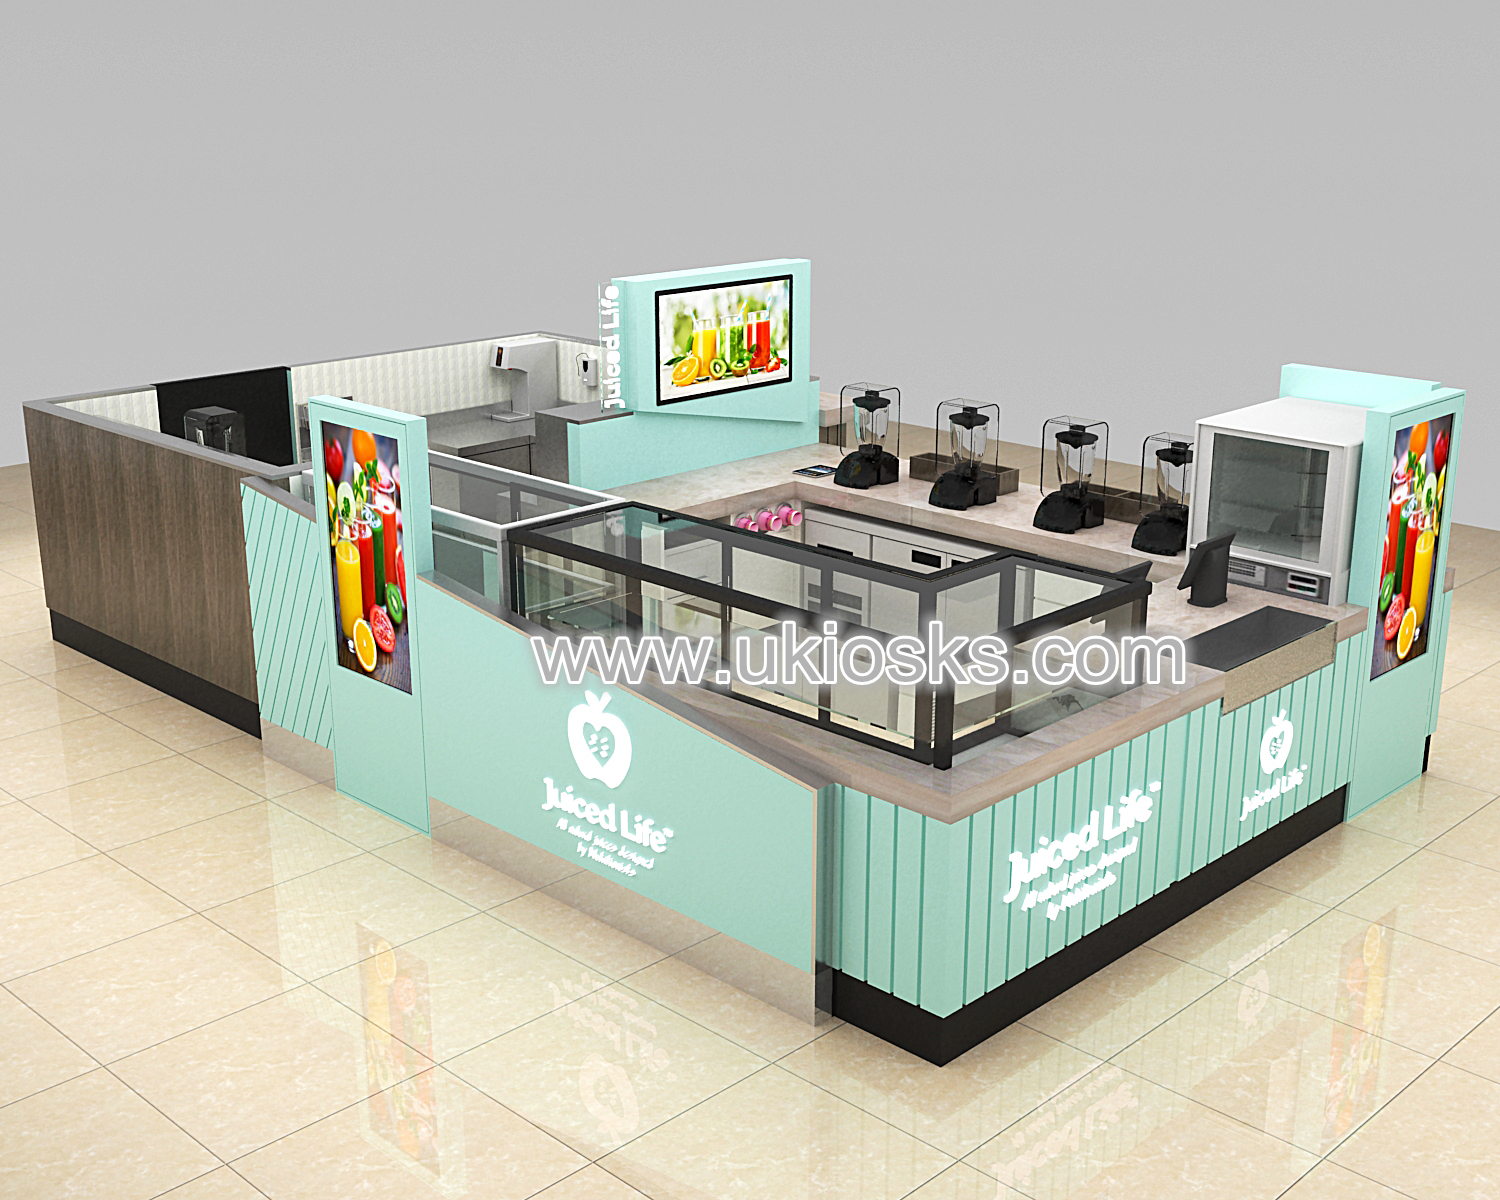 custom Westfield mall juiced life juice bar kiosk for sale